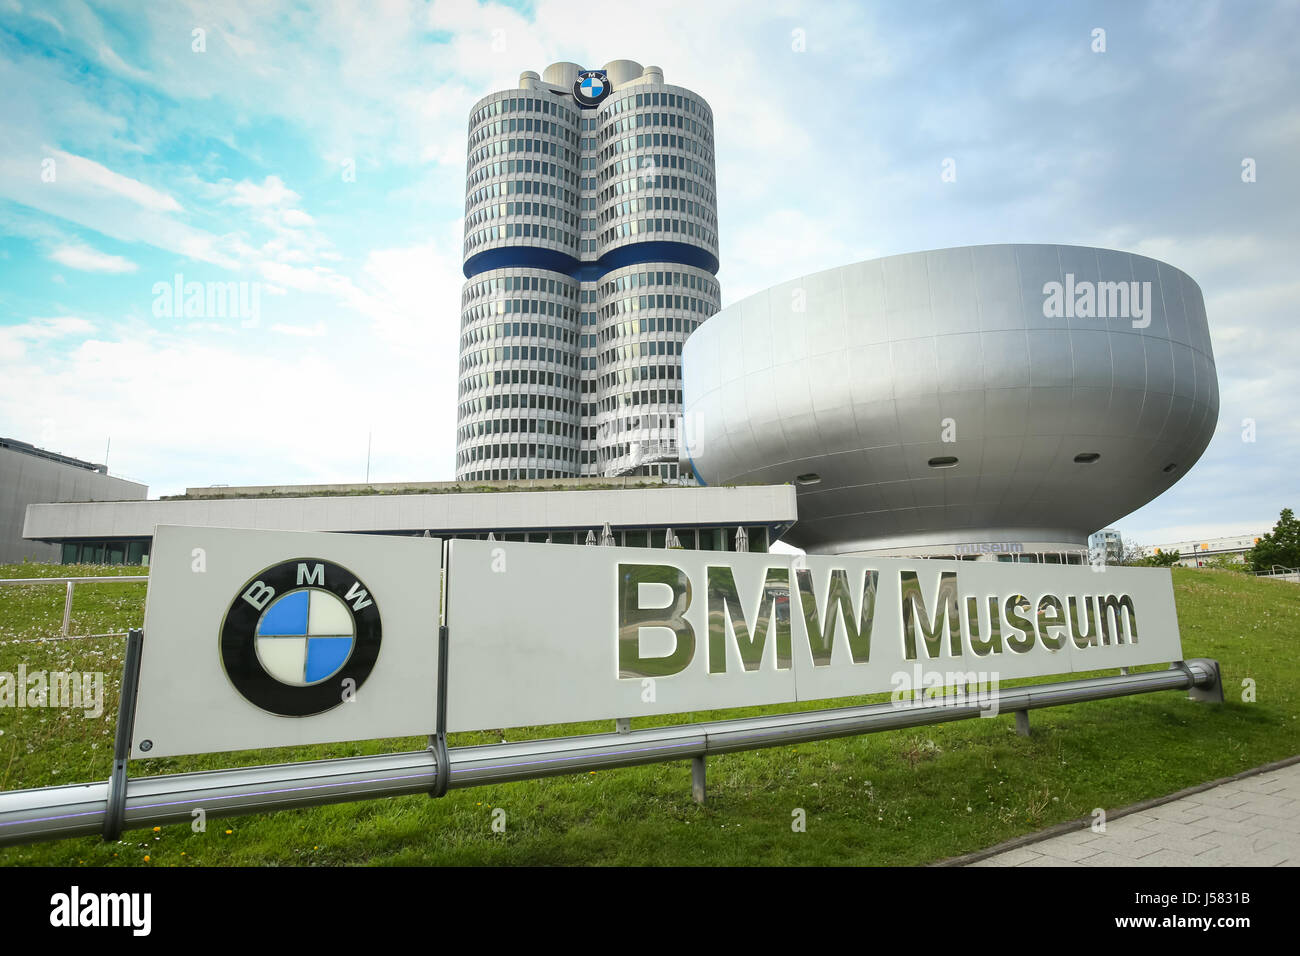 bmw museum bmw design model photos bmw museum bmw design. Black Bedroom Furniture Sets. Home Design Ideas